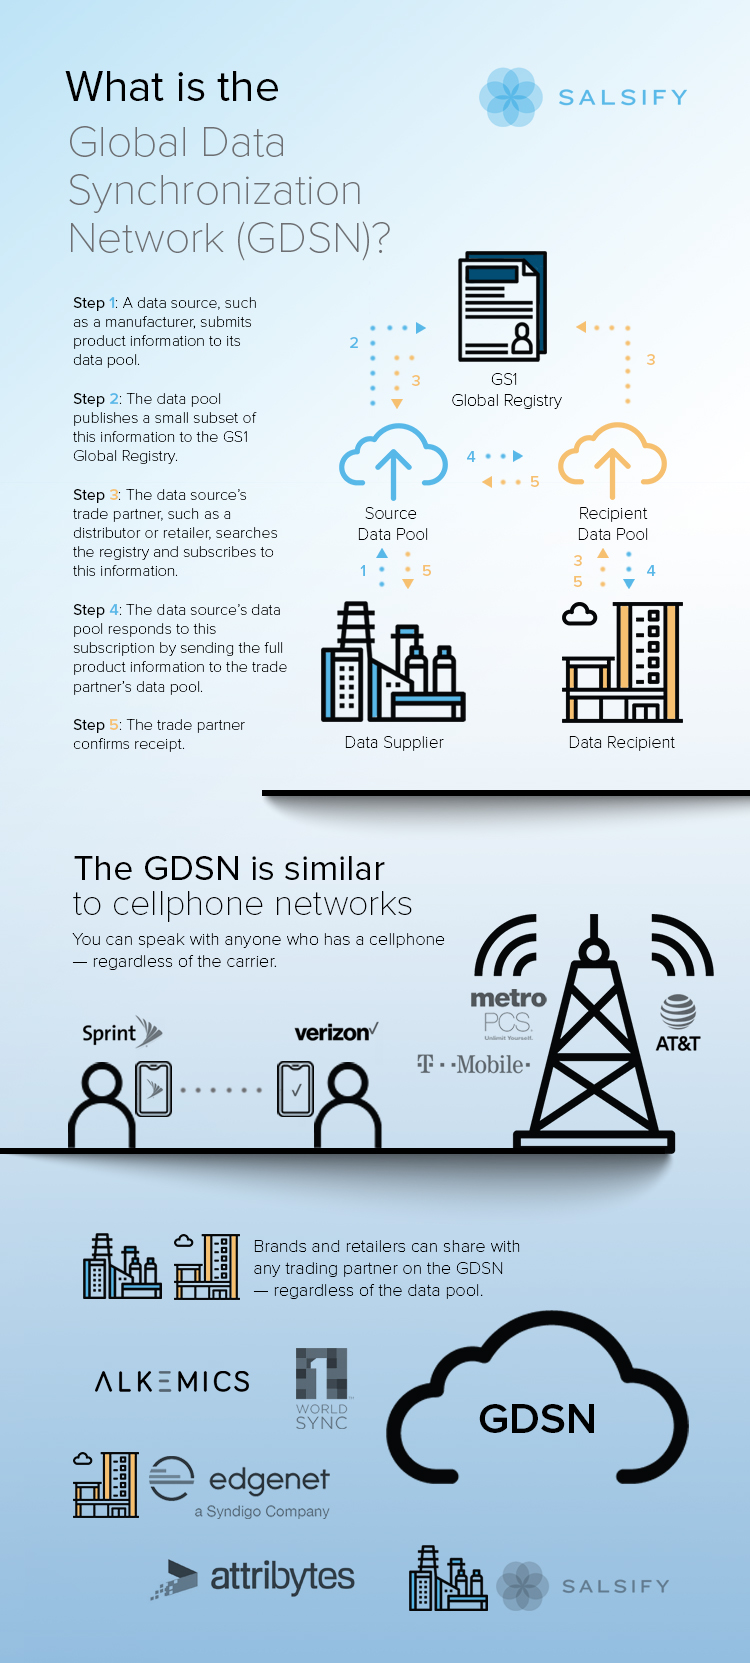 What Is the GDSN: Salsify Infographic Explains the GDSN as Being Similar to a Cellphone Network